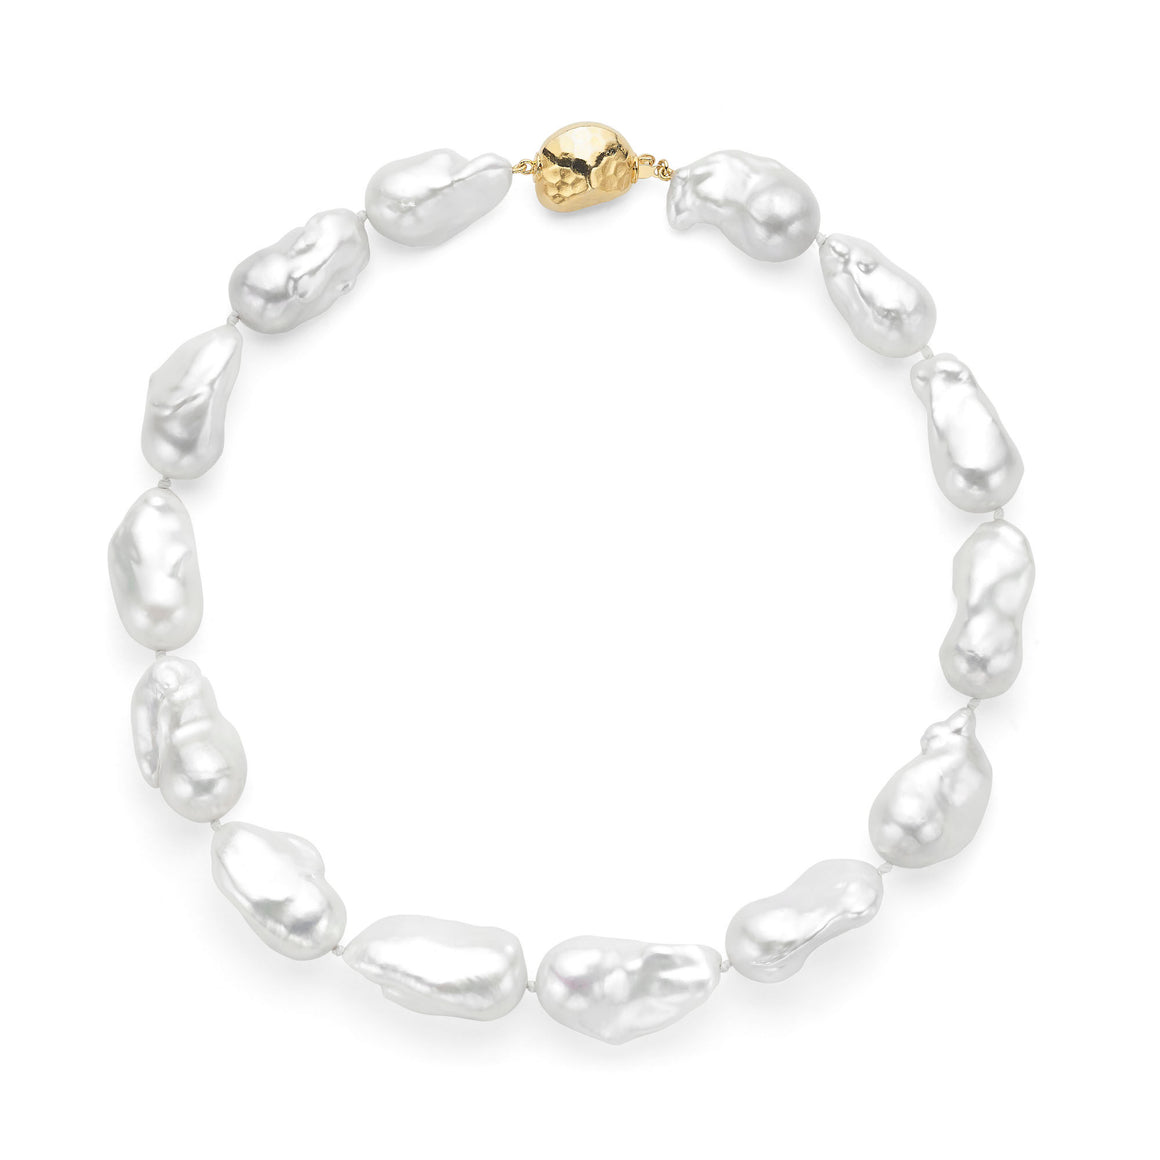 Le Croisette Large White Baroque Freshwater Pearl Necklace